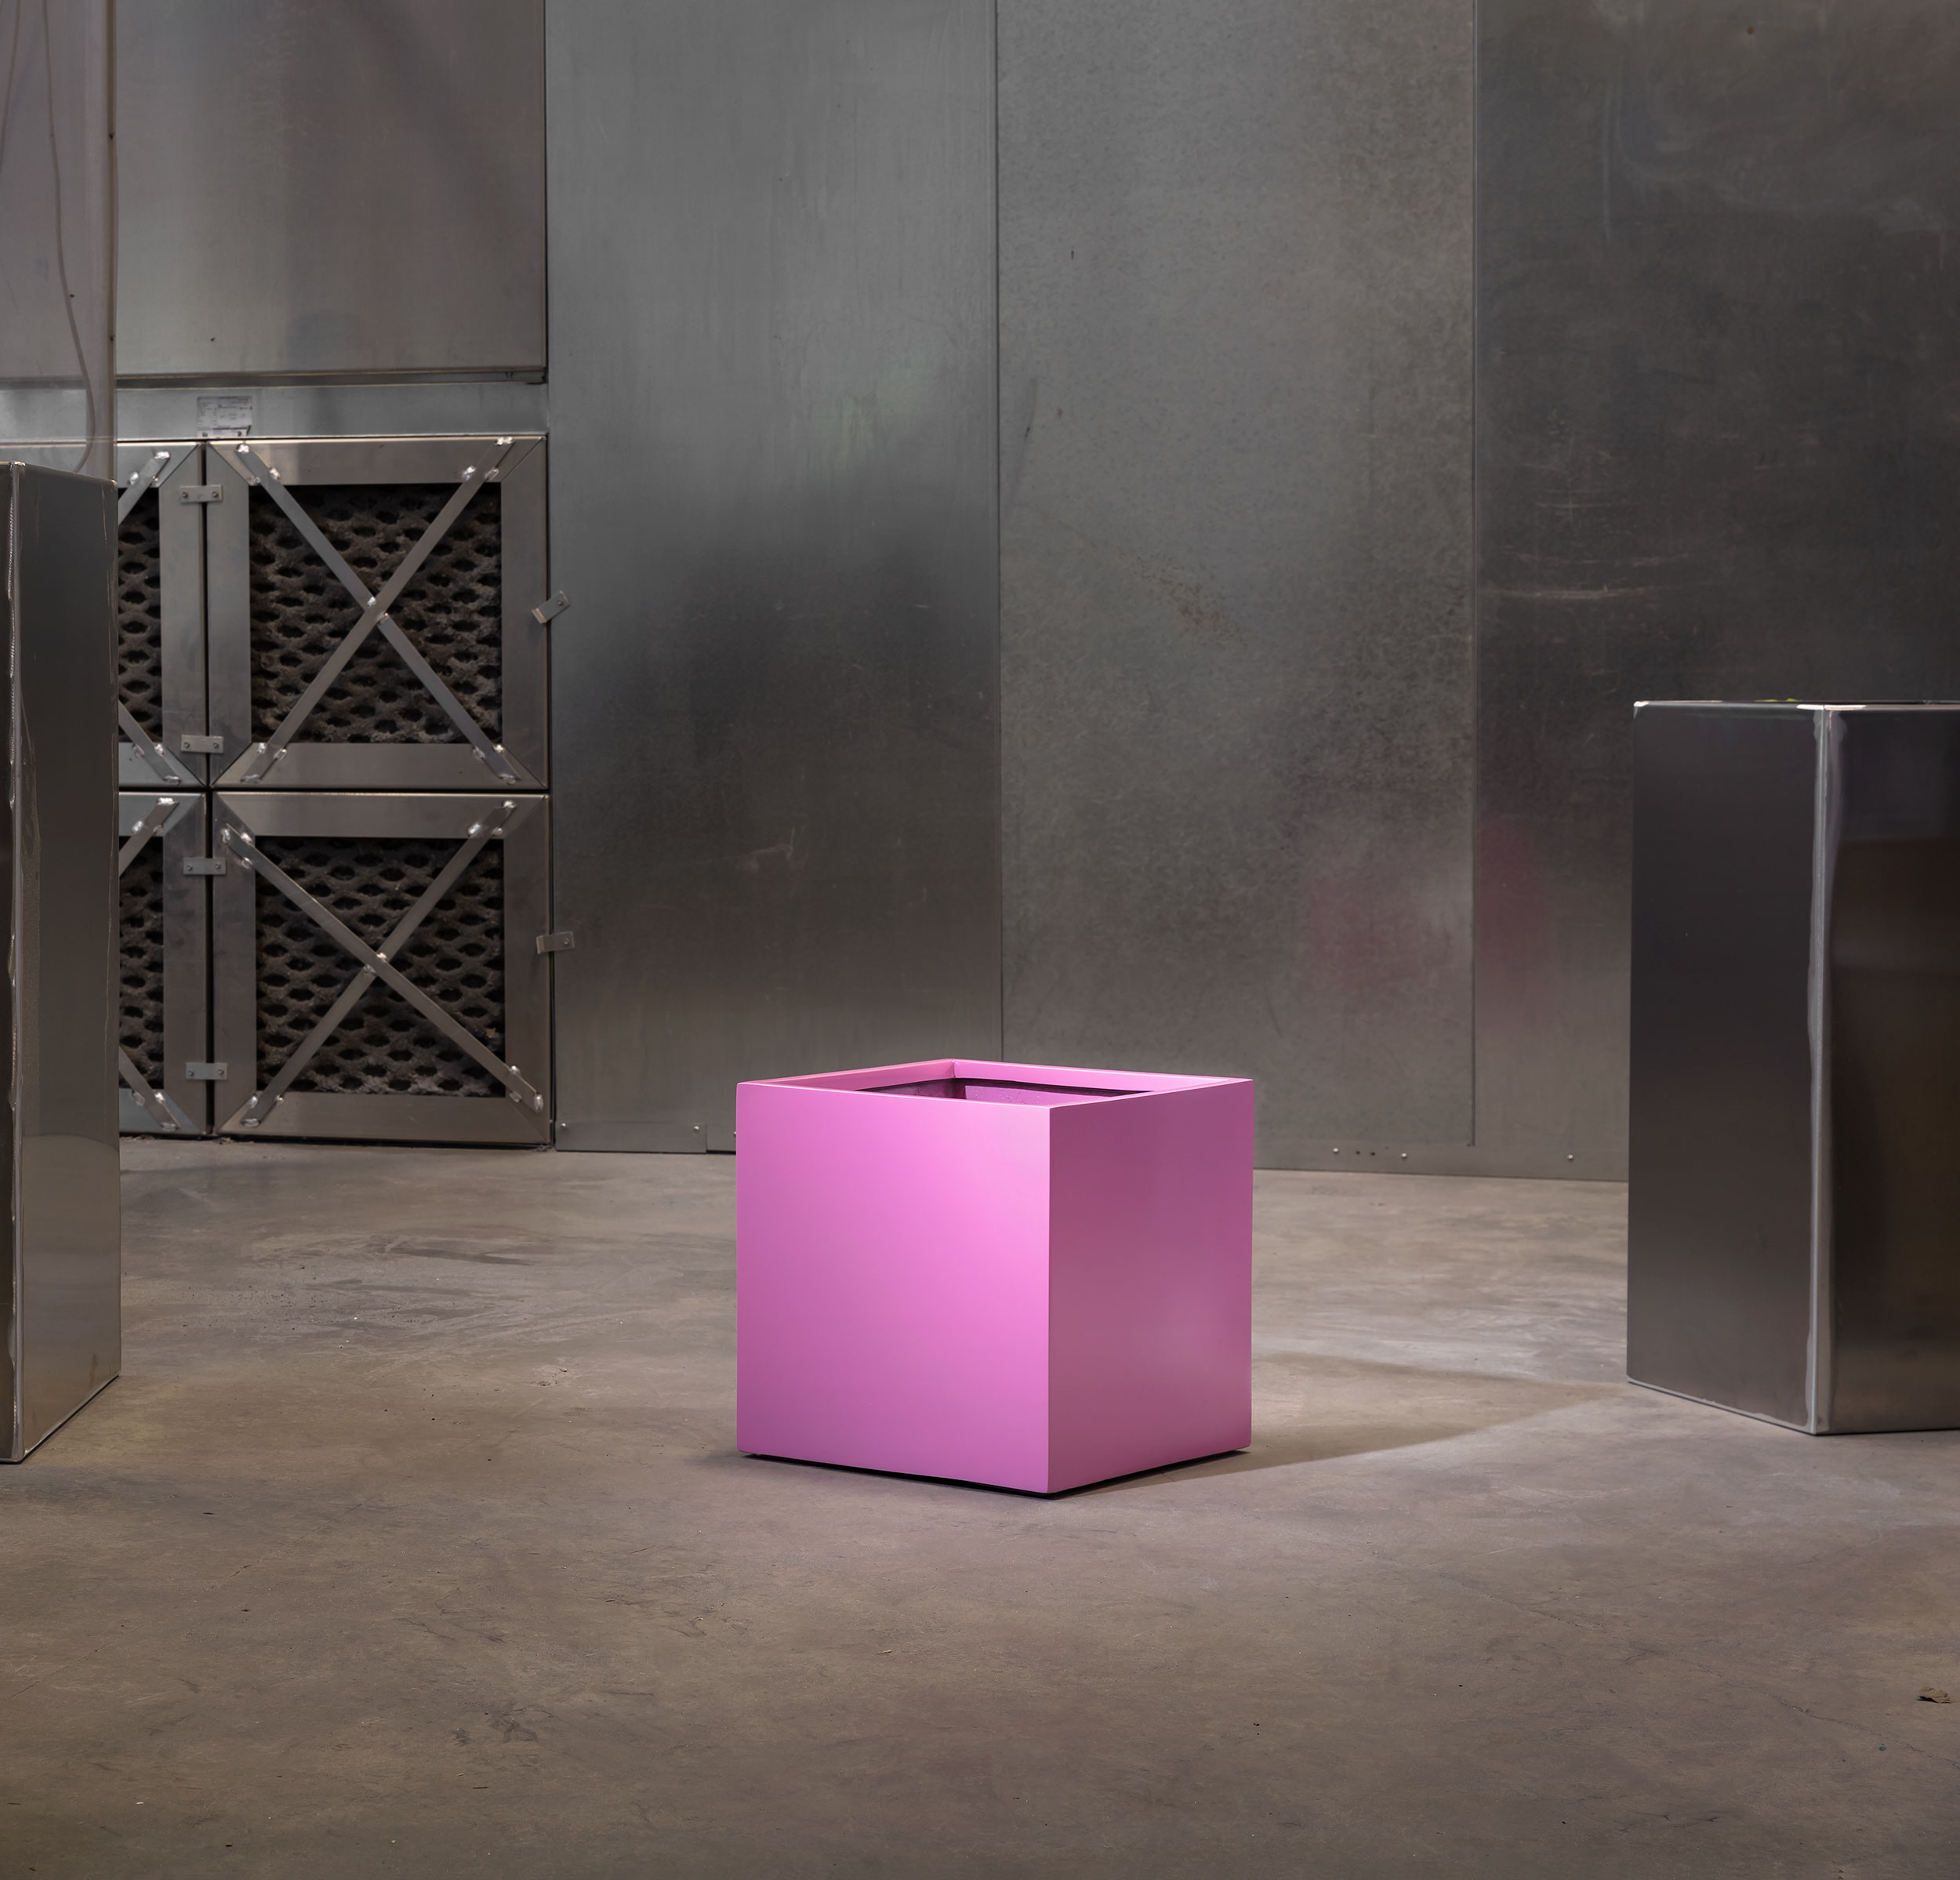 Pink planter designed by Green Theory in their warehouse facility.